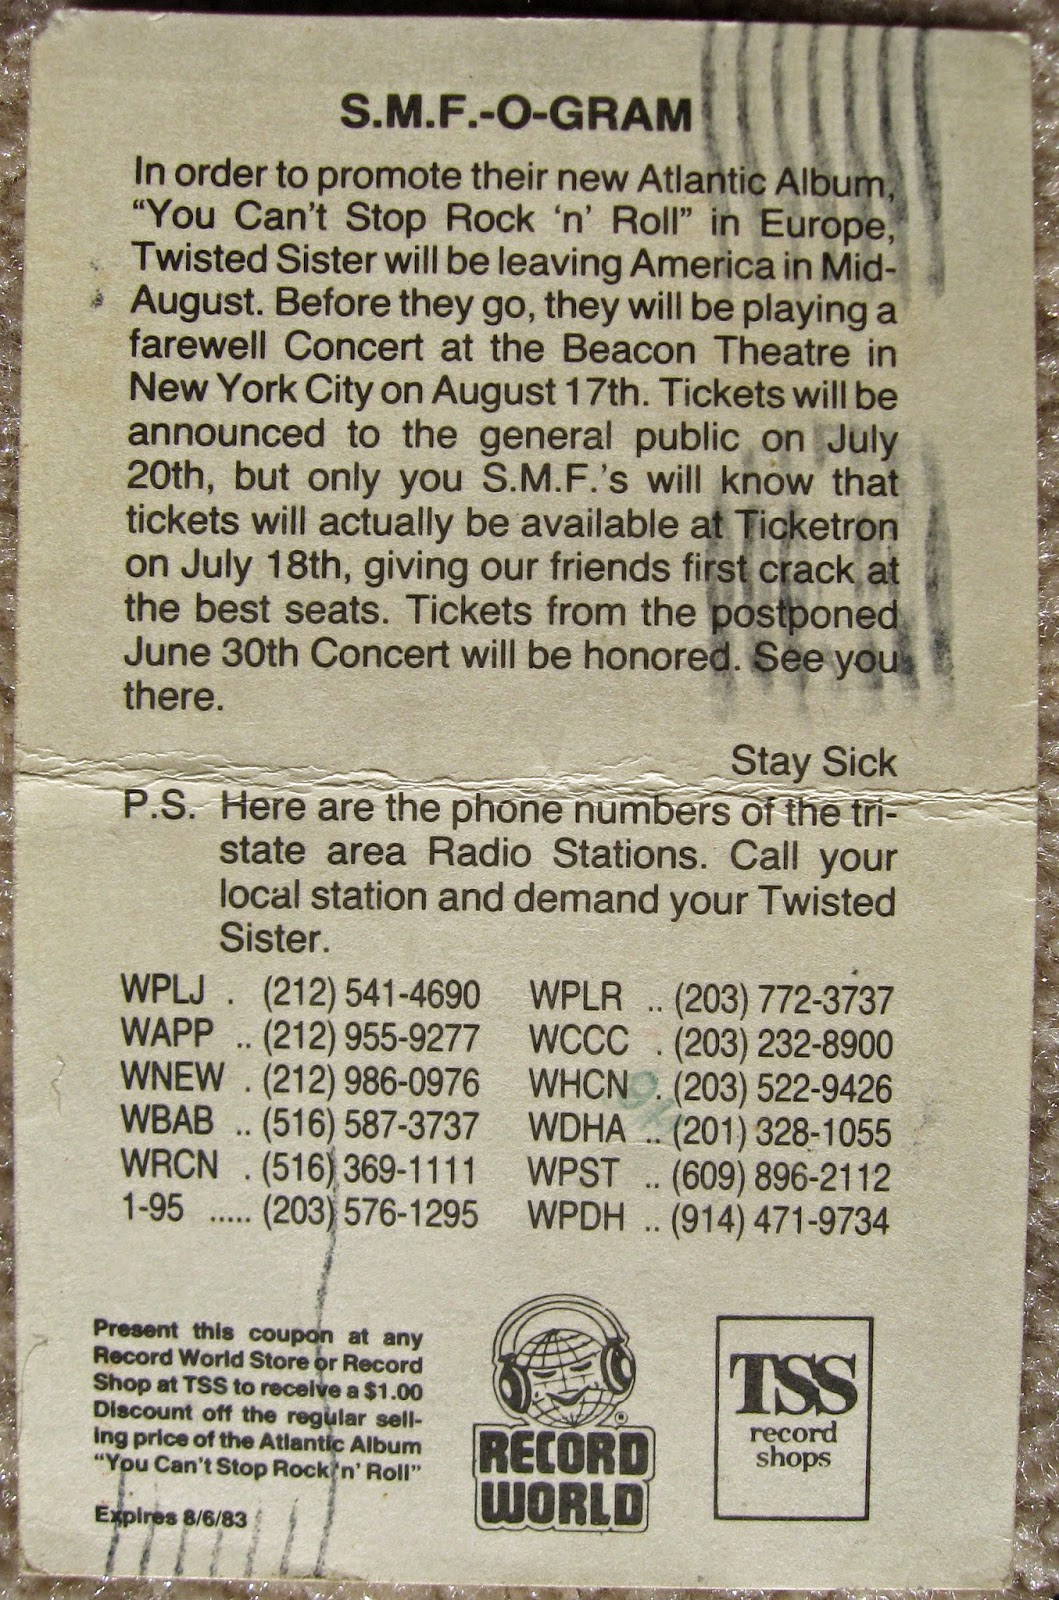 SMF O-Gram that was mailed to me while I was in the navy down in Virginia. Even though I was away from the Tri-State area at the time, had'ta keep in touch with the boyz!!